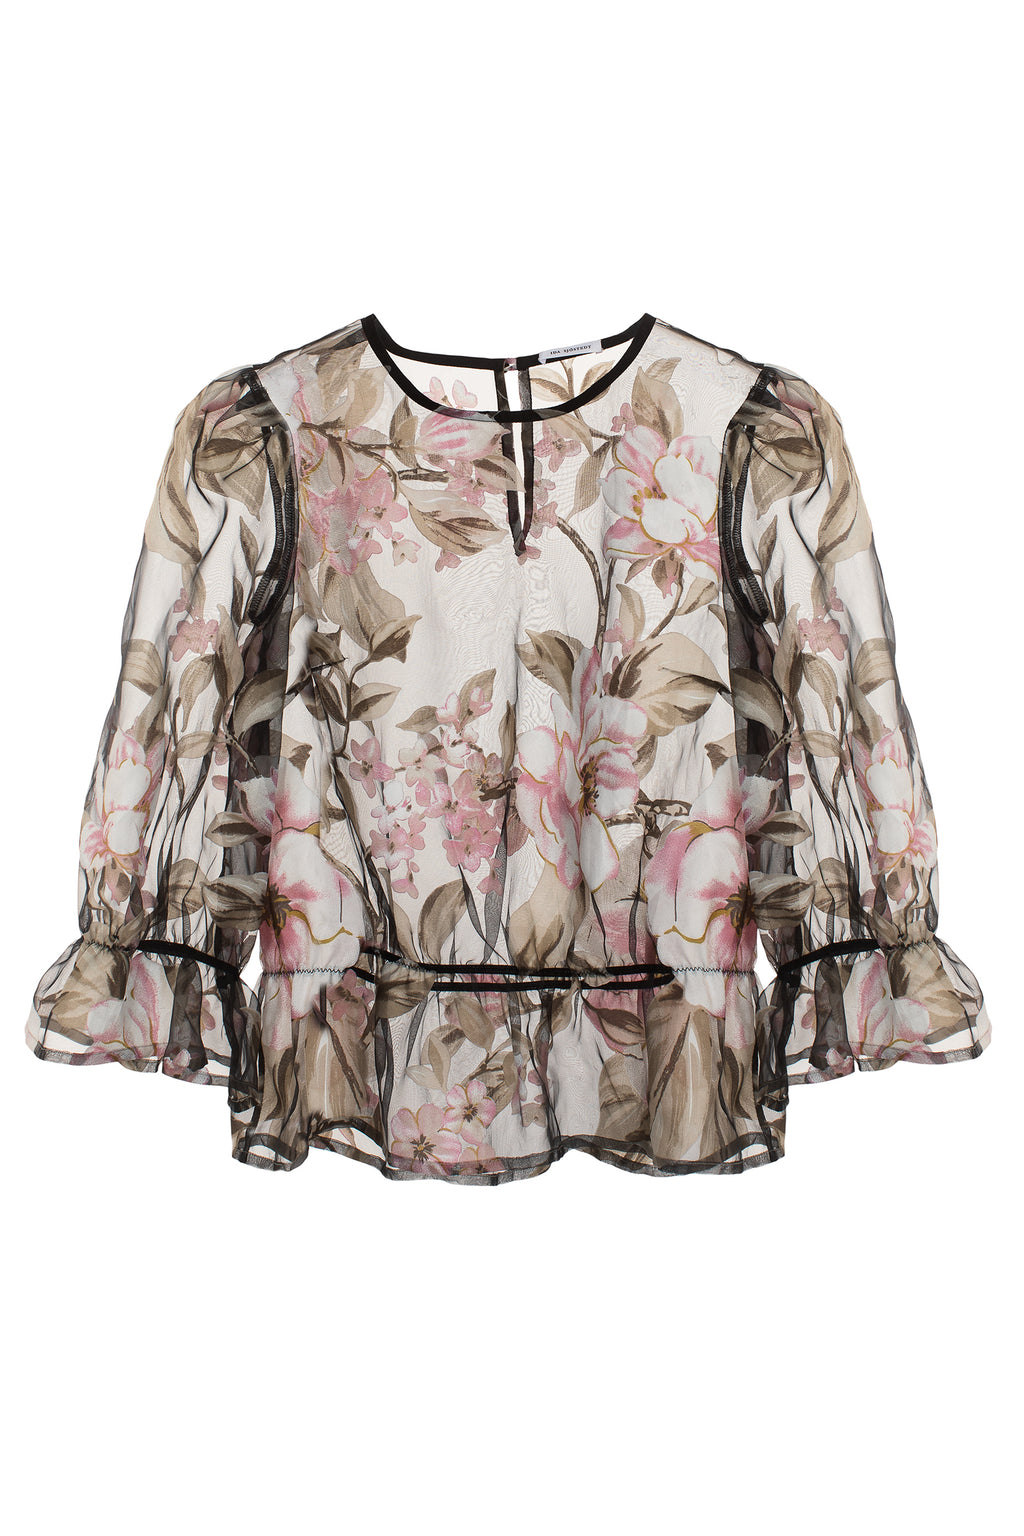 Orlando Top Pink Florals On Black